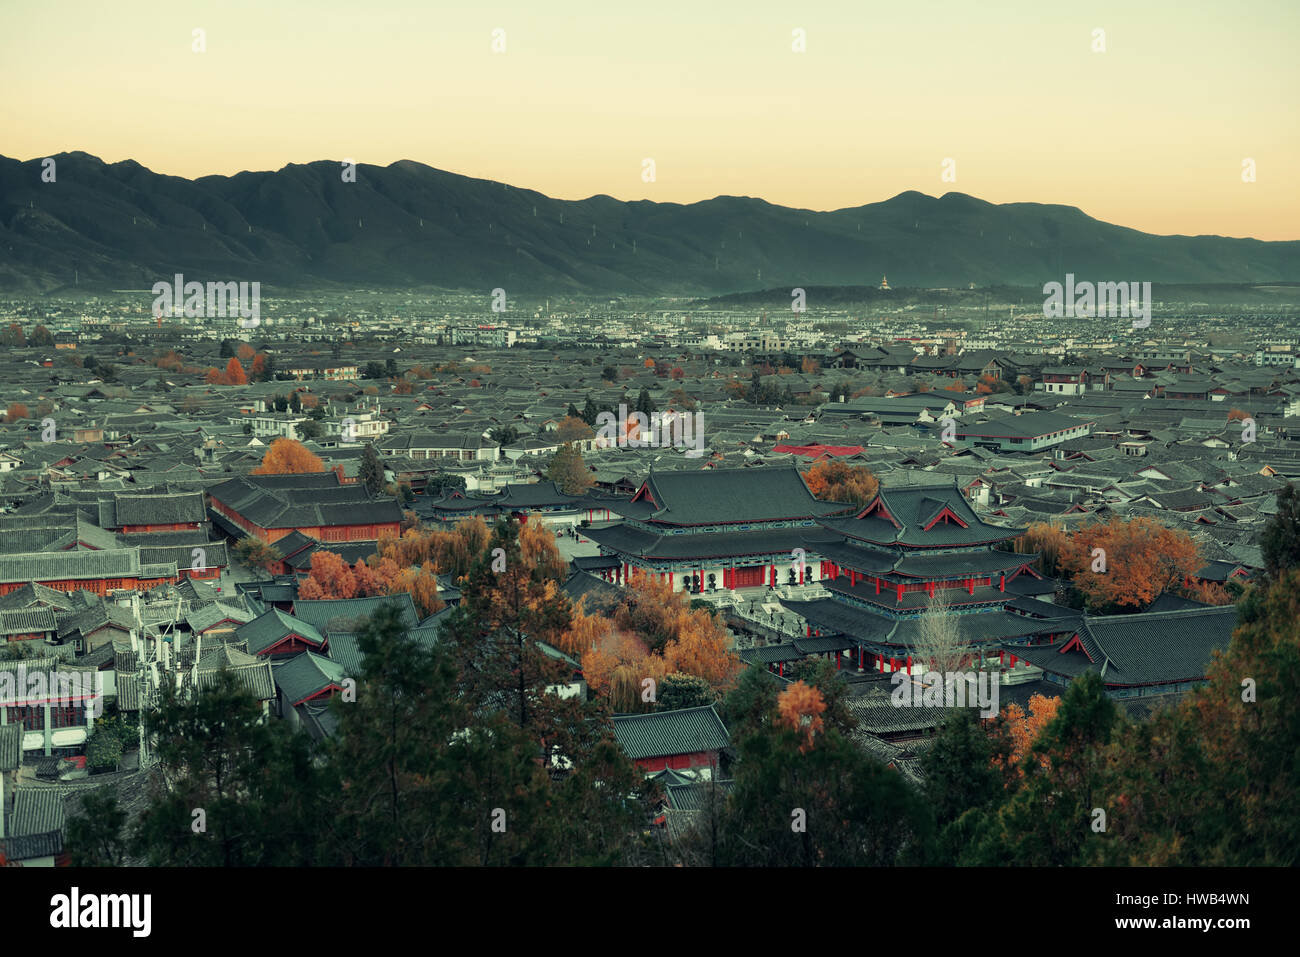 Lijiang mountain top view, Yunnan, China. - Stock Image